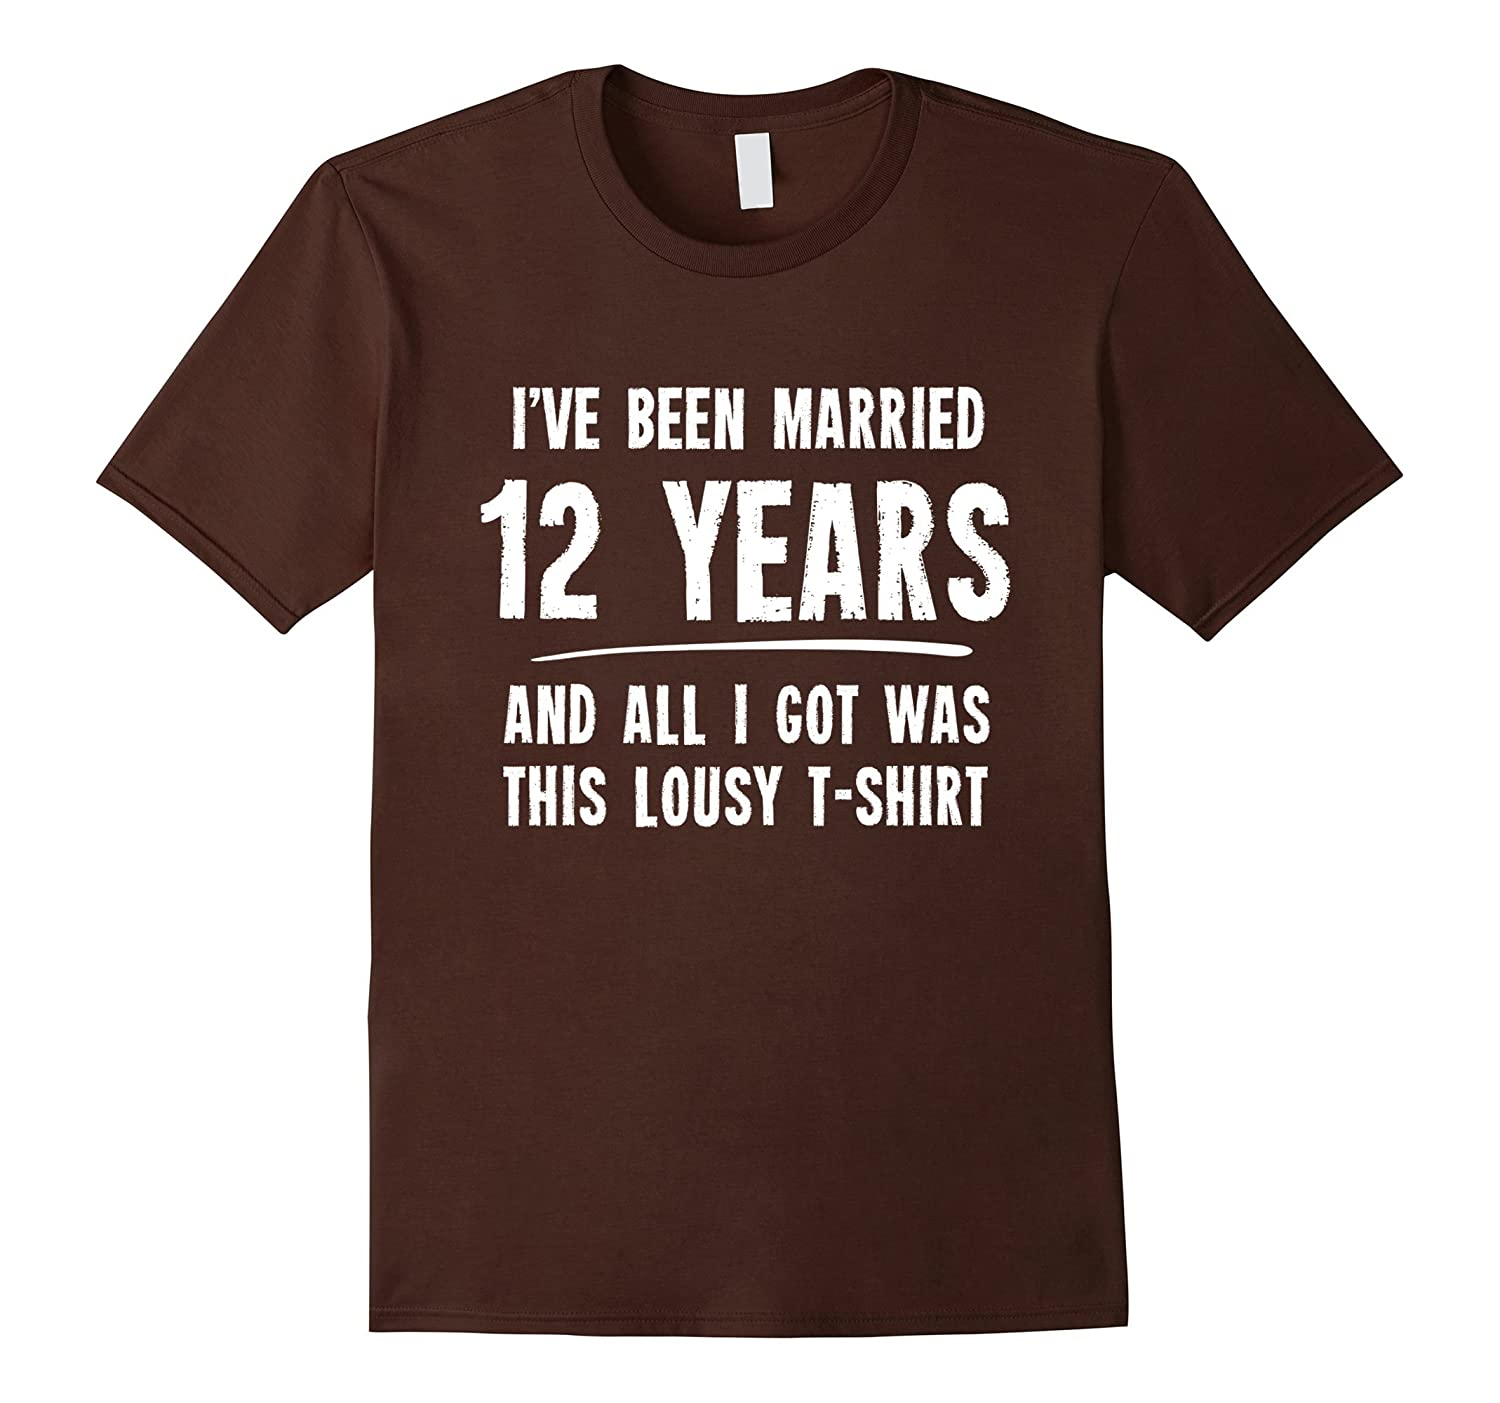 12 Year Wedding Anniversary Gifts: 12 Year Anniversary Gift 12th Wedding Married Funny T